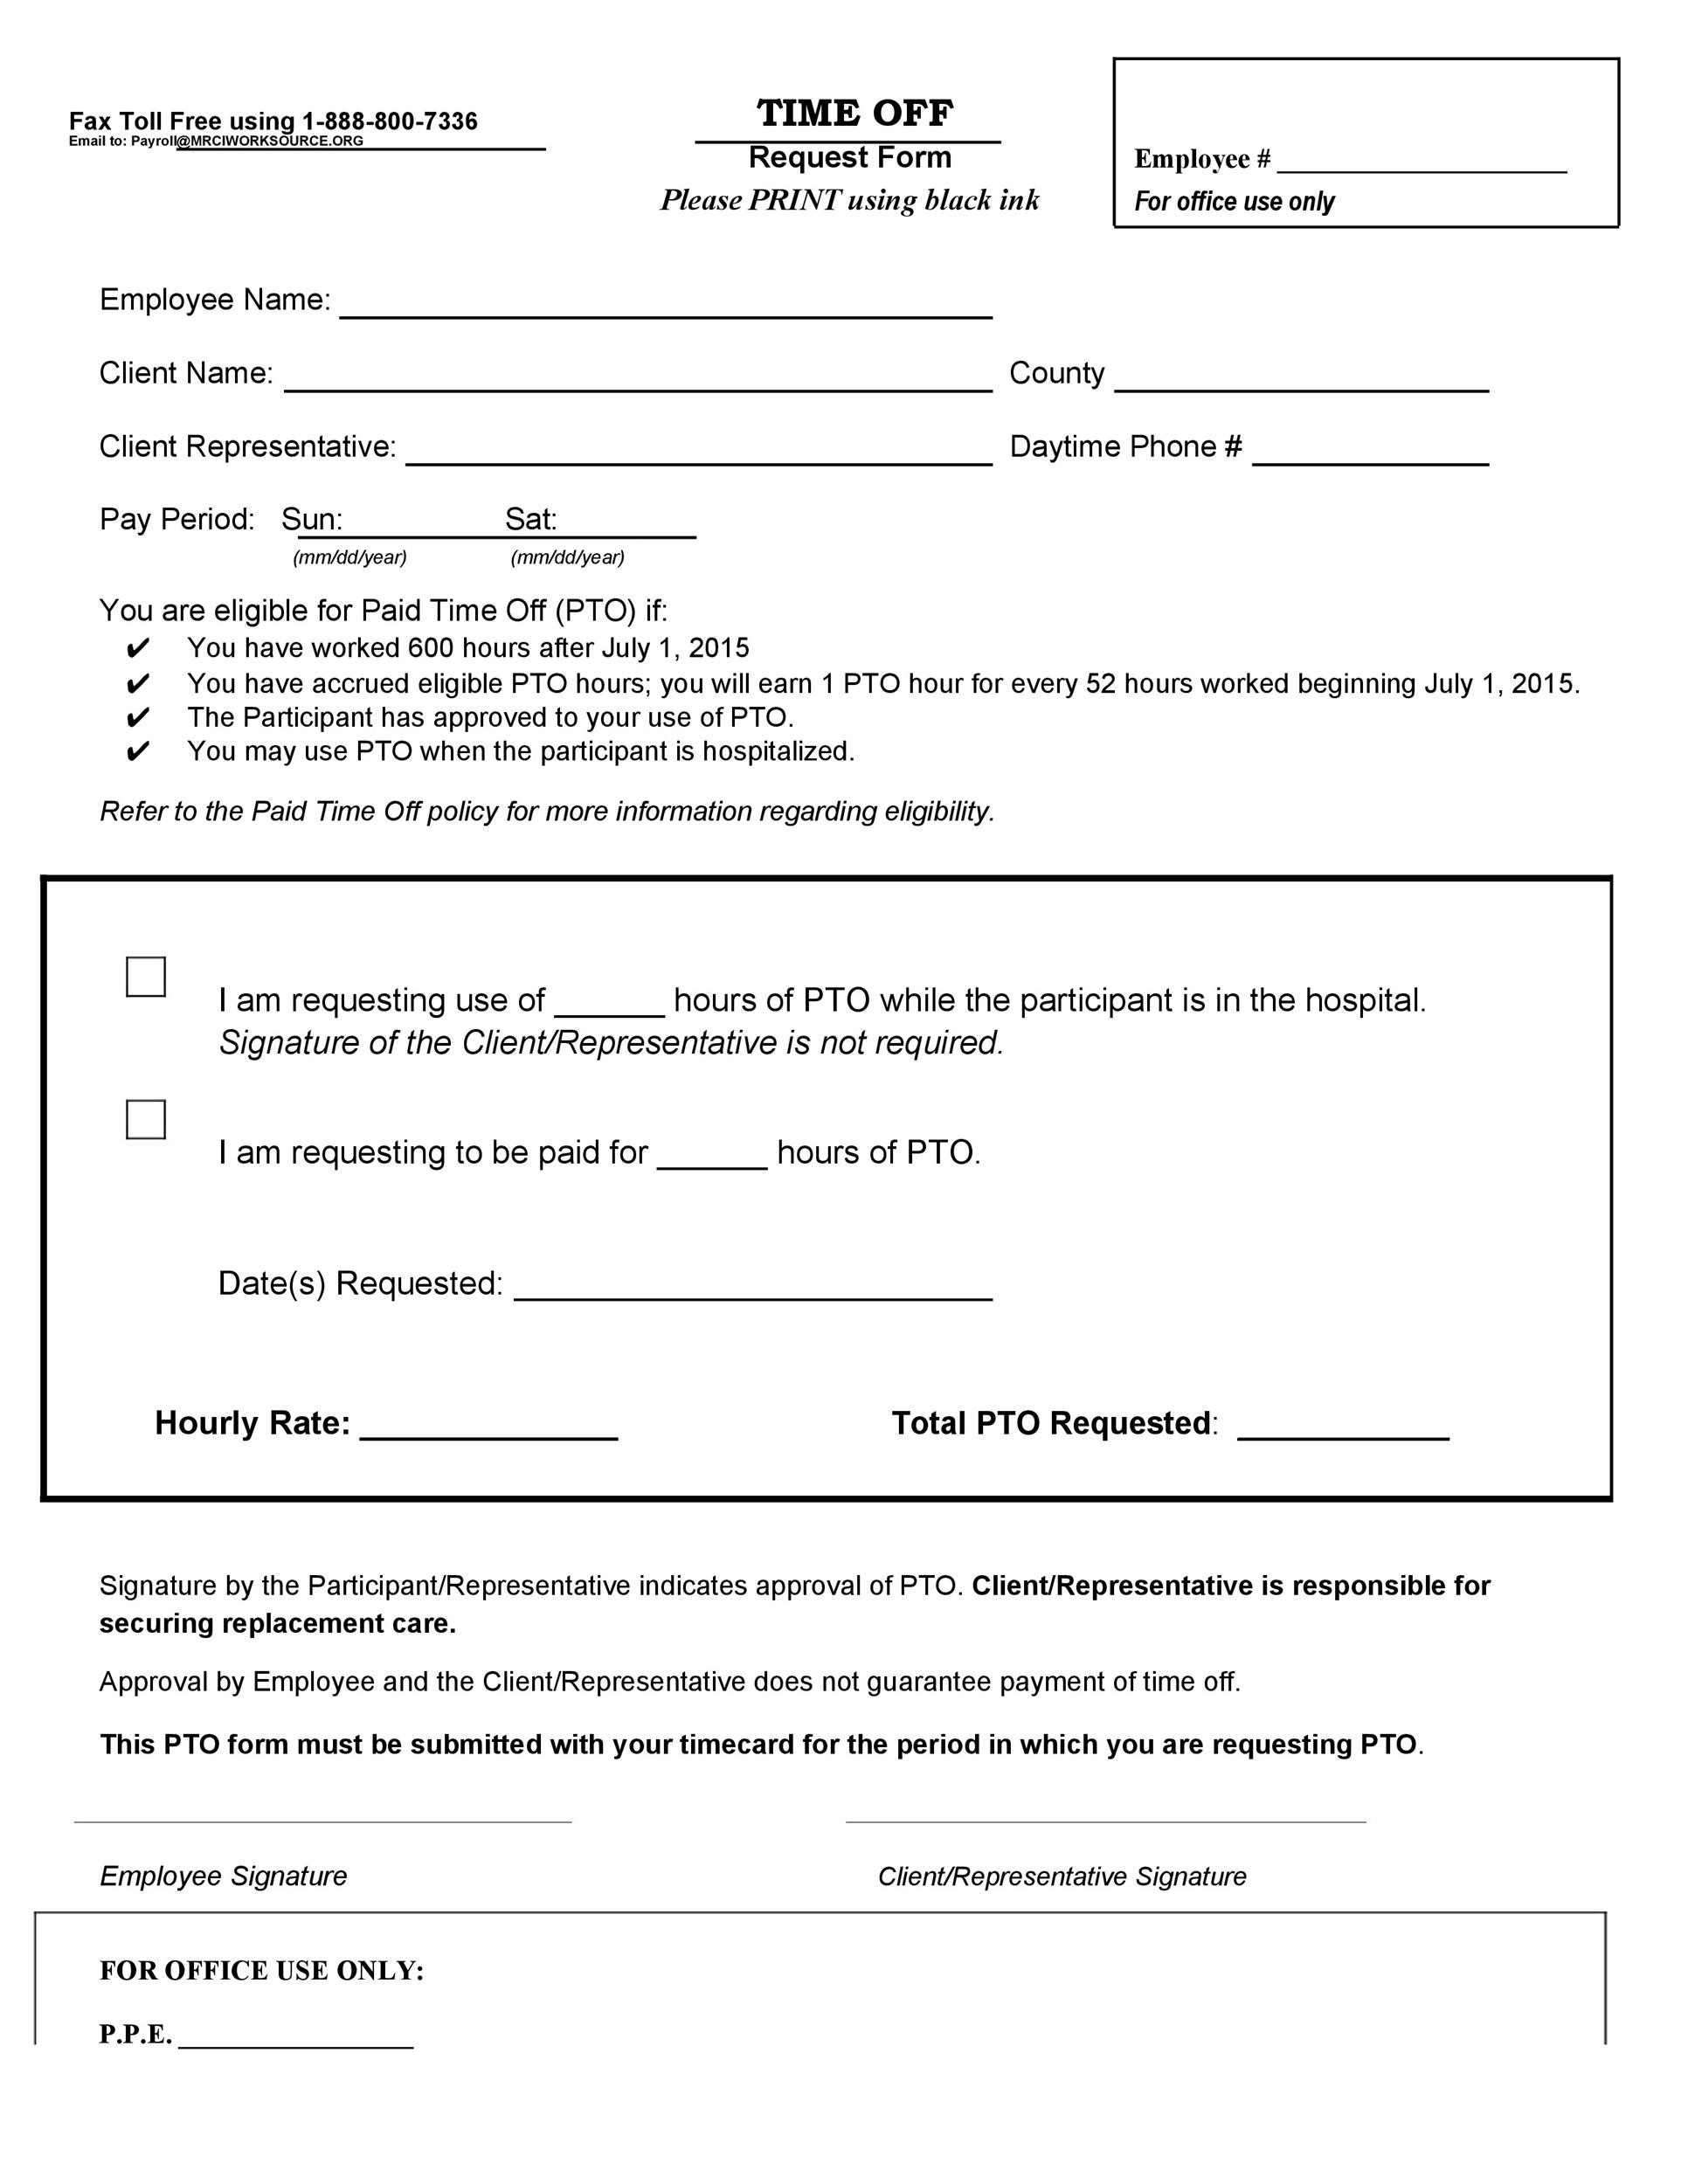 request off forms for work